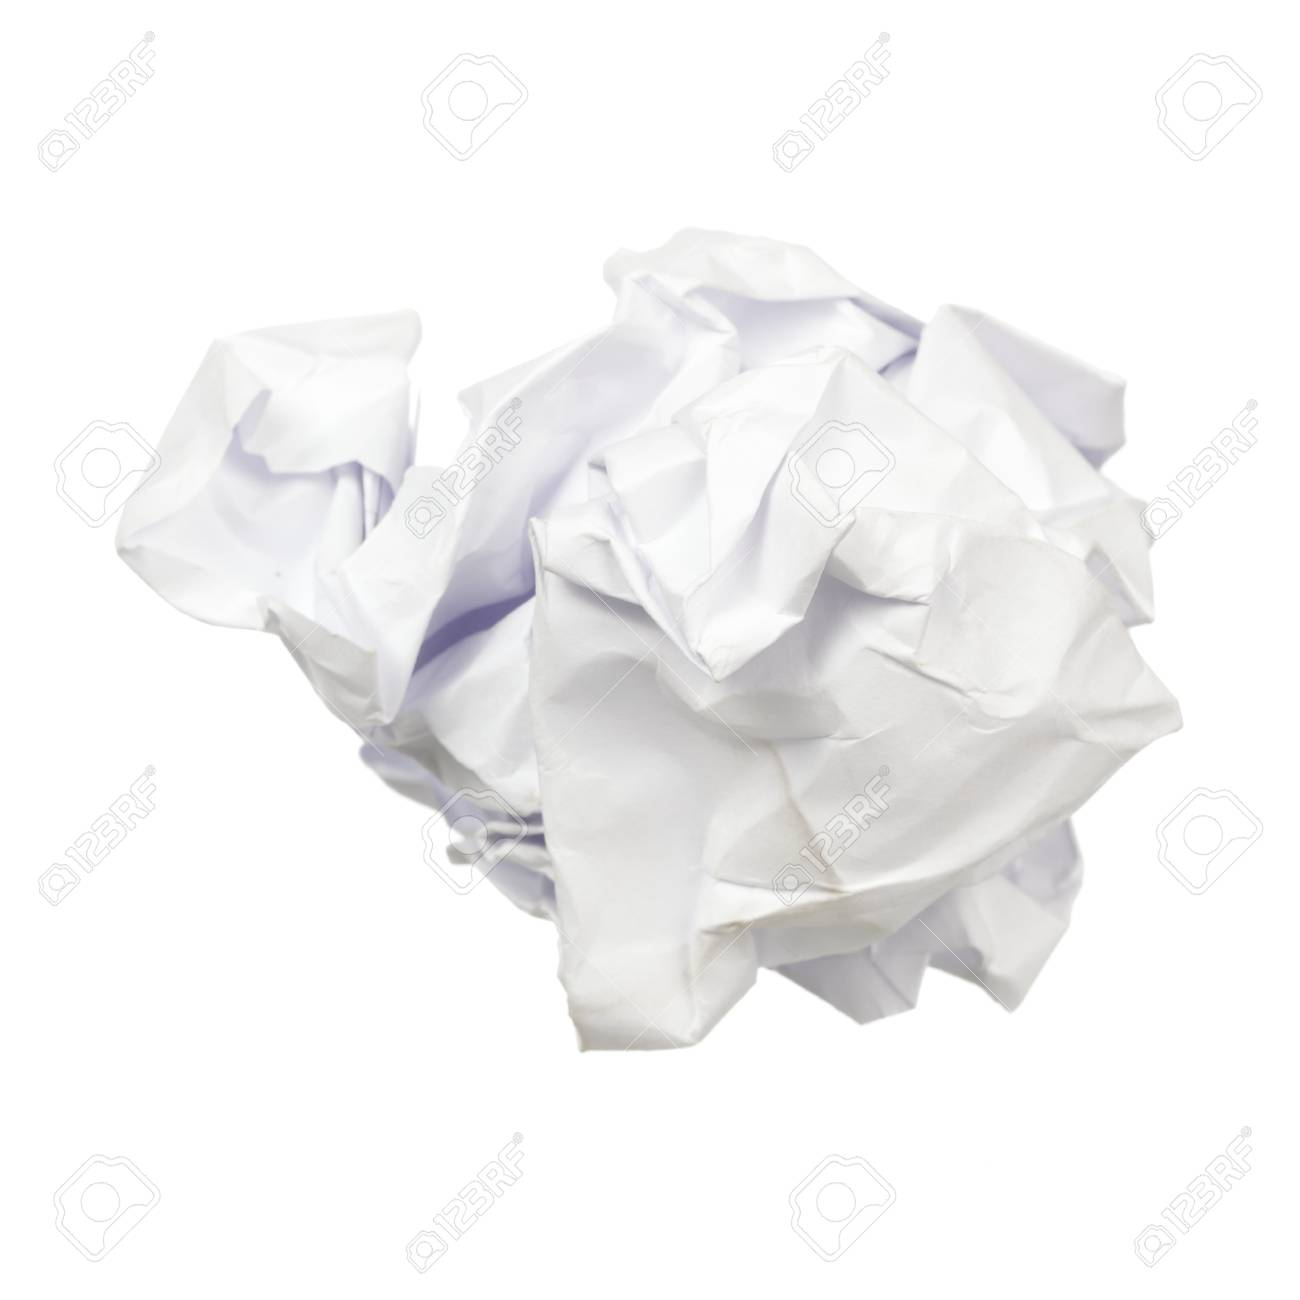 crumpled paper ball isolated on a white background stock photo